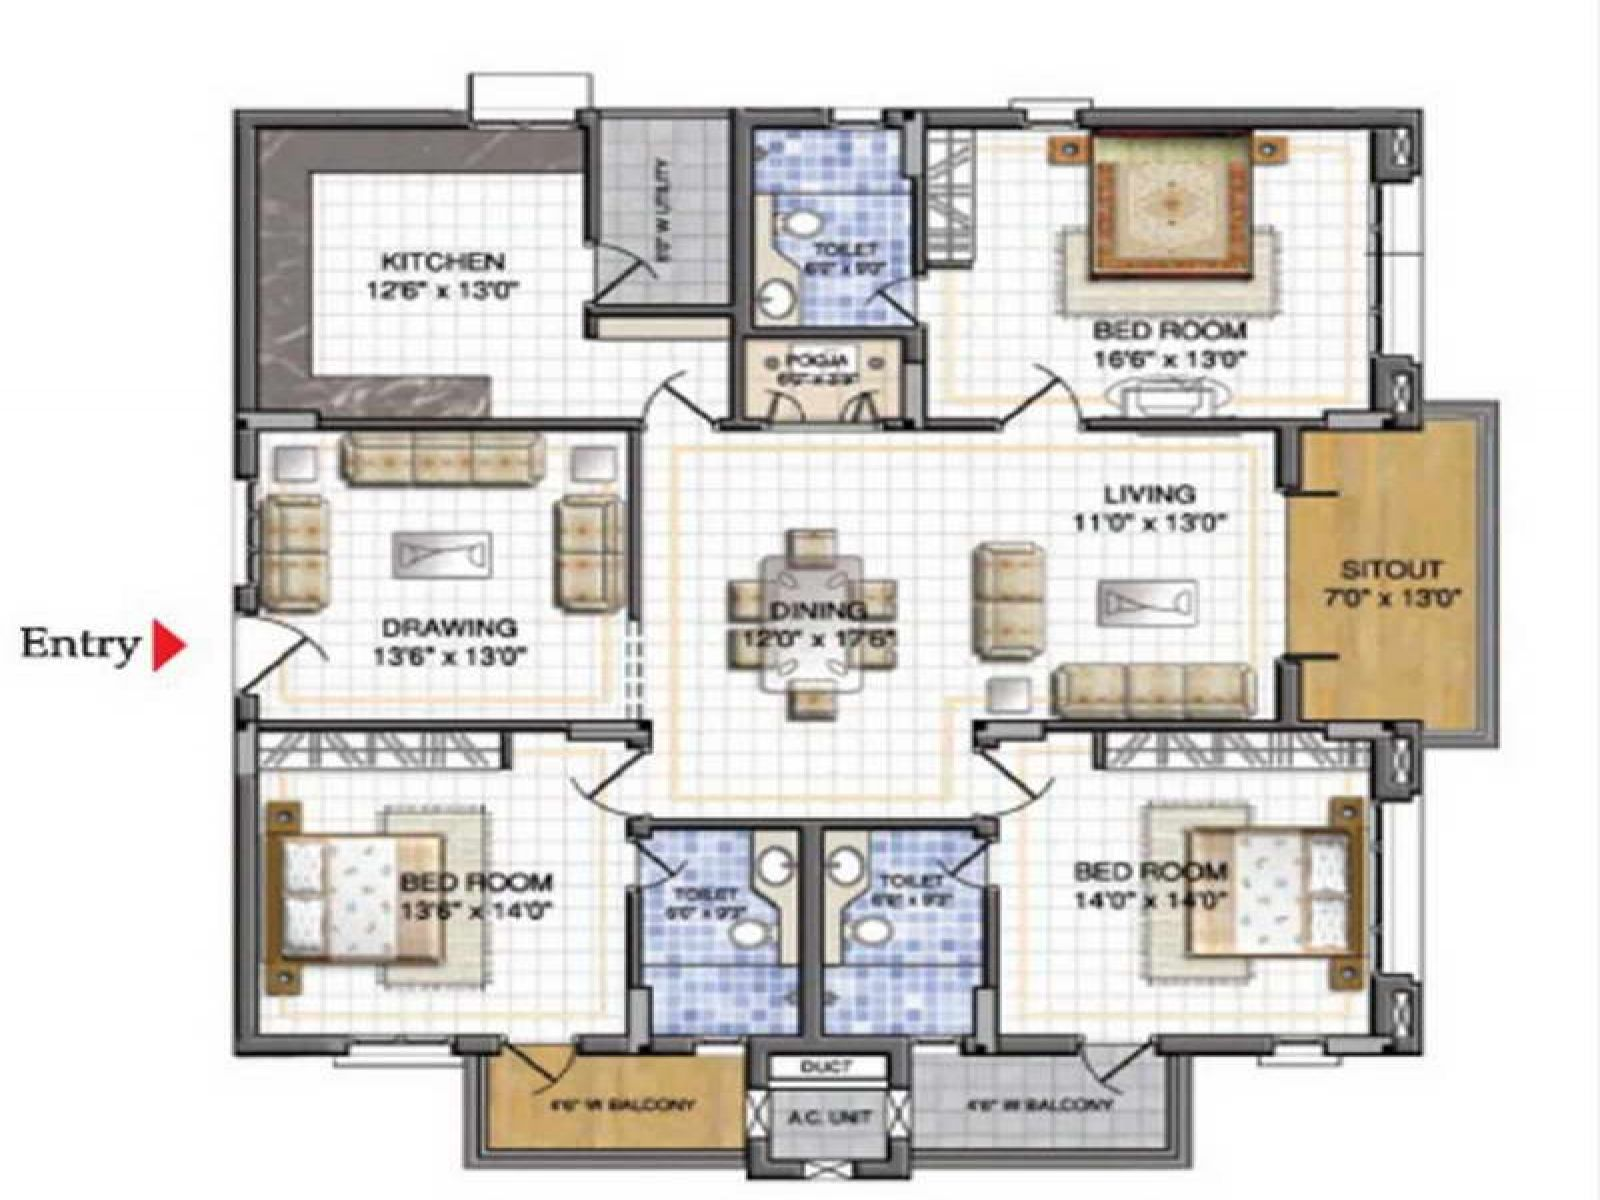 Sweet home 3d plans google search house designs Create blueprints online free